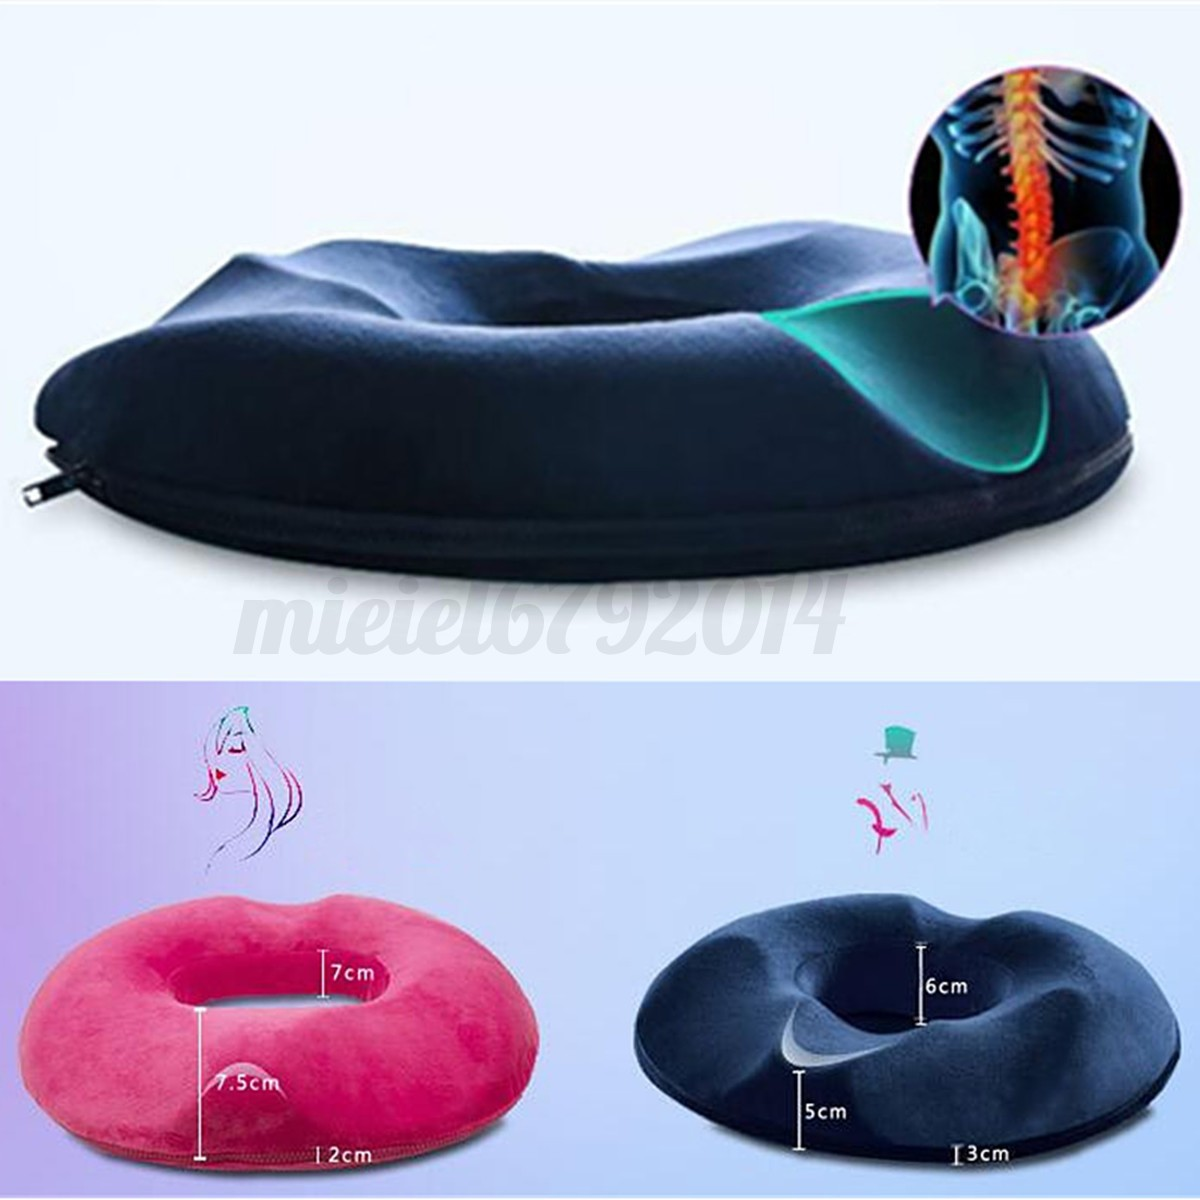 best office chair for hemorrhoids vinyl dining room covers memory foam seat cushion hemorrhoid treatment ring donut